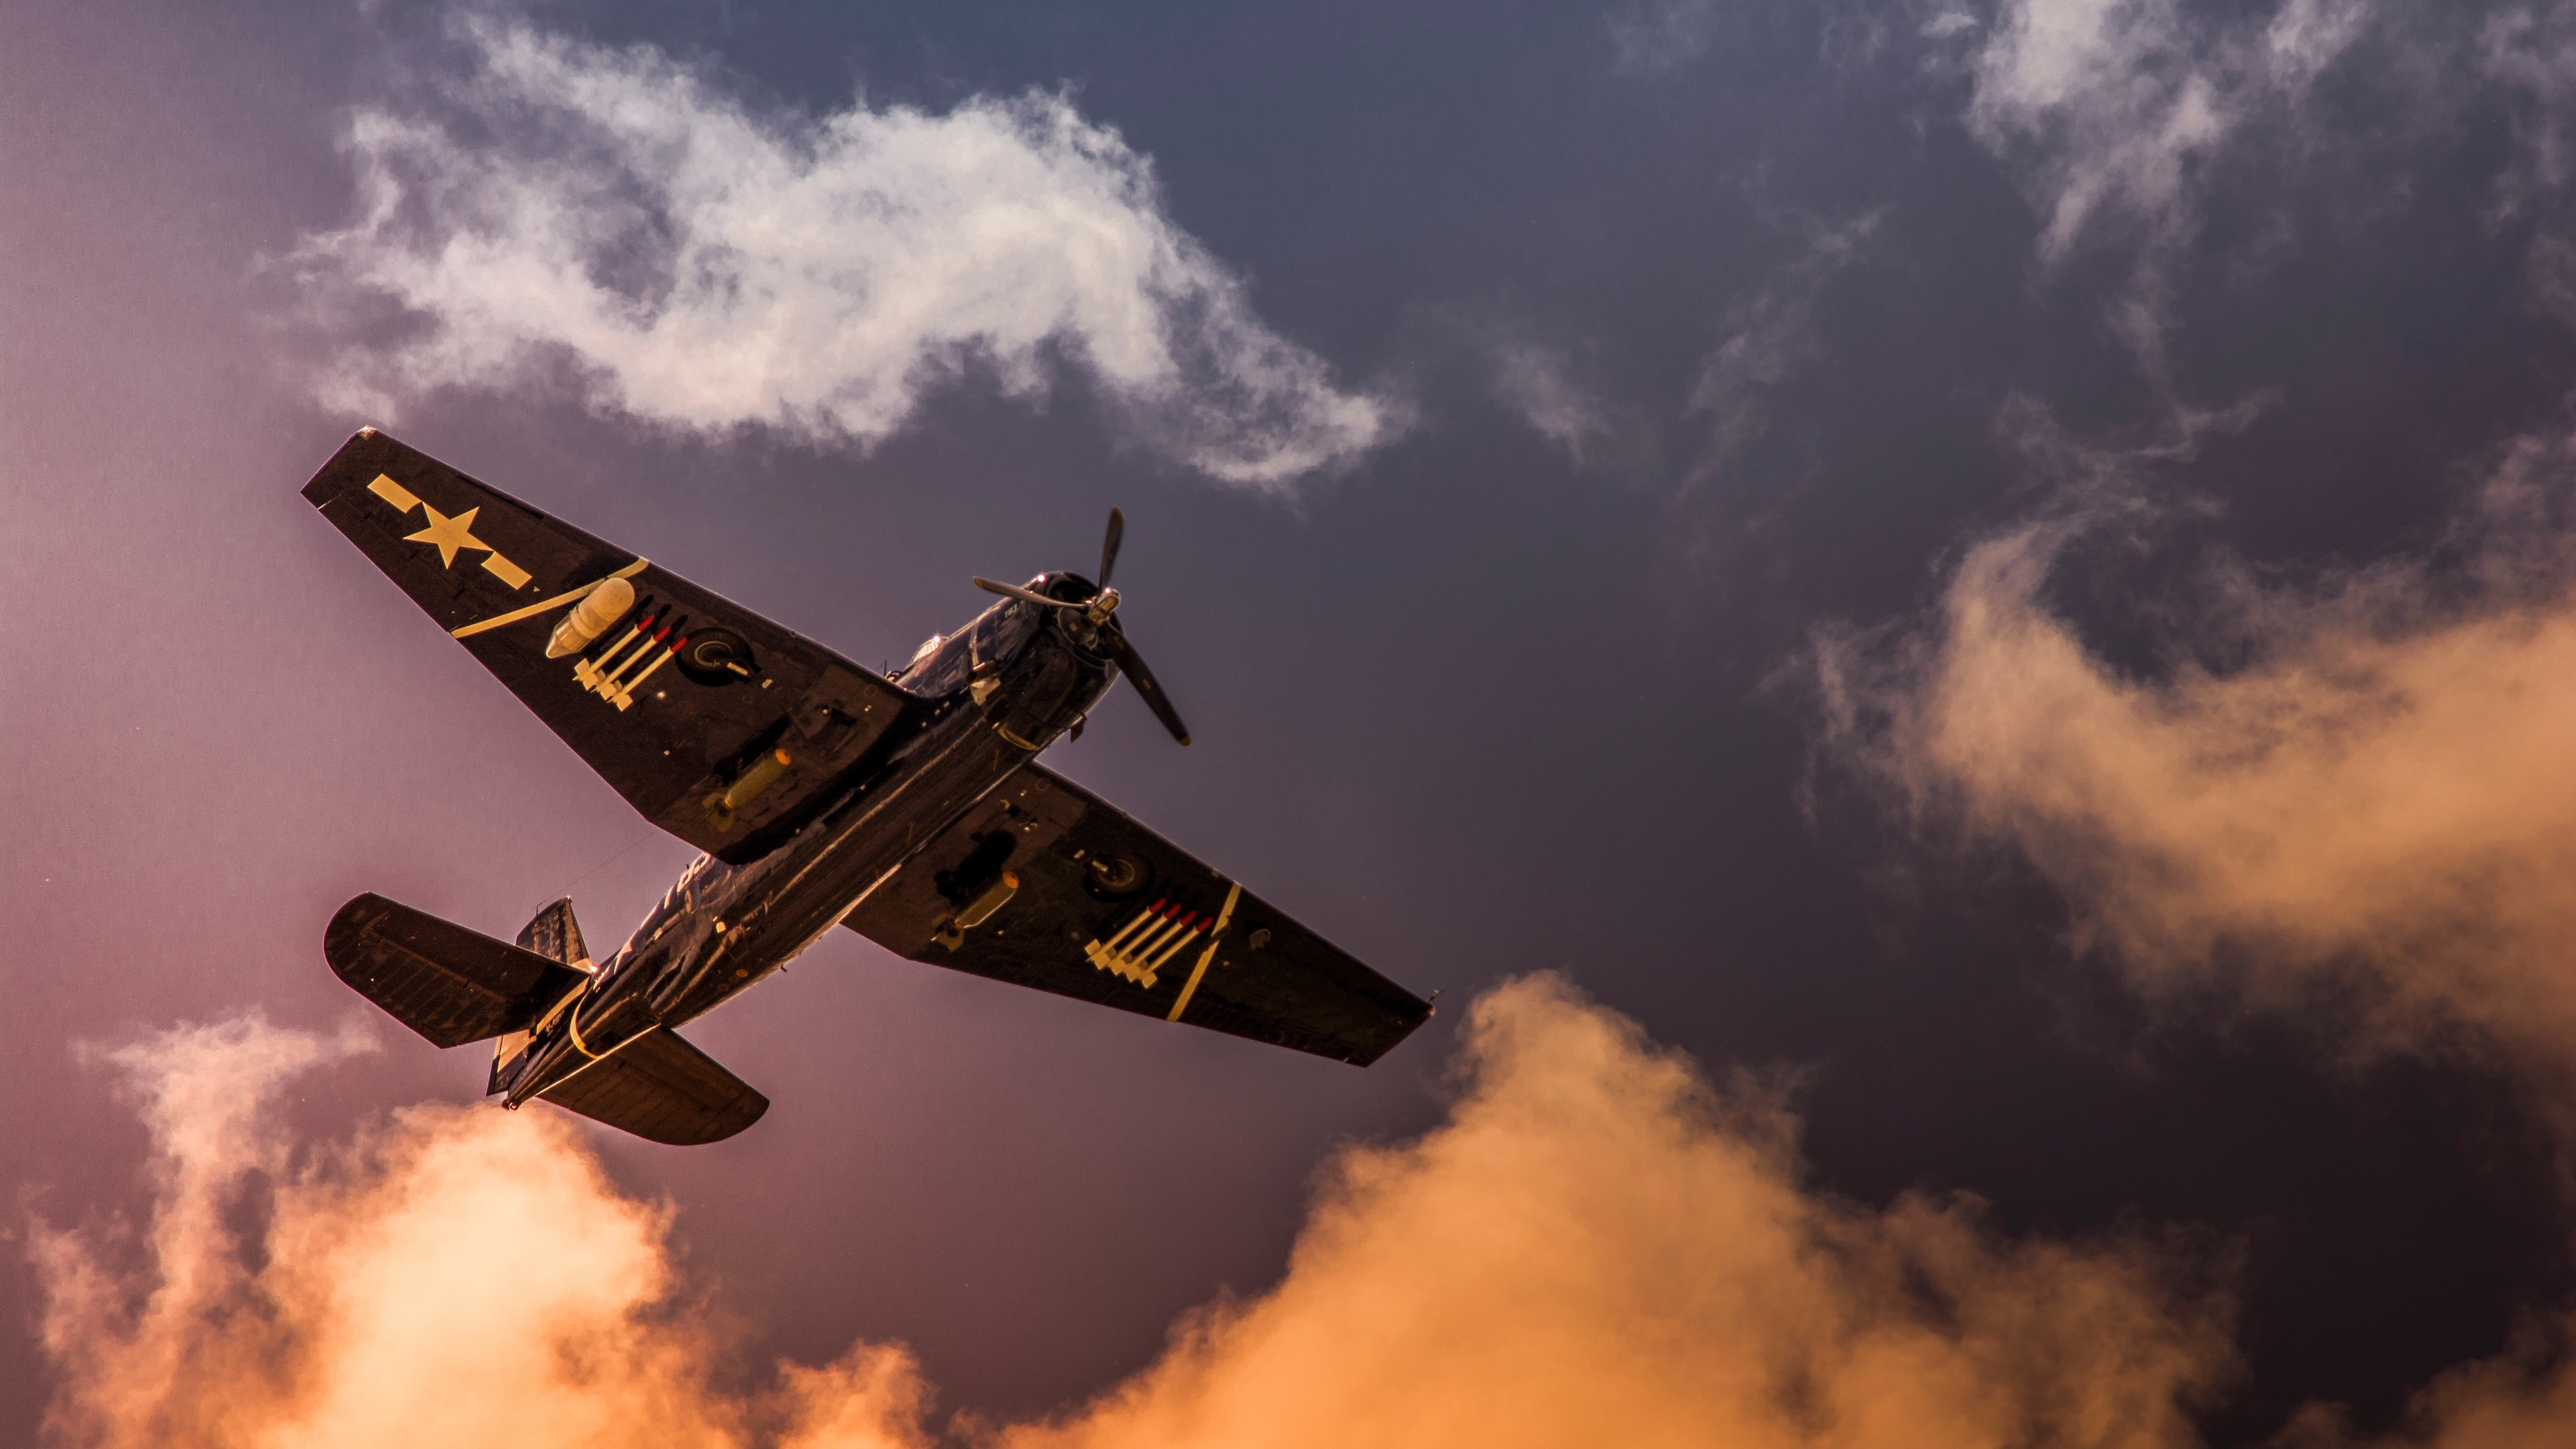 grumman tbf avenger aircraft sky clouds 4k 1547938018 - Grumman TBF Avenger Aircraft Sky Clouds 4k - sky wallpapers, planes wallpapers, hd-wallpapers, clouds wallpapers, aircraft wallpapers, 5k wallpapers, 4k-wallpapers